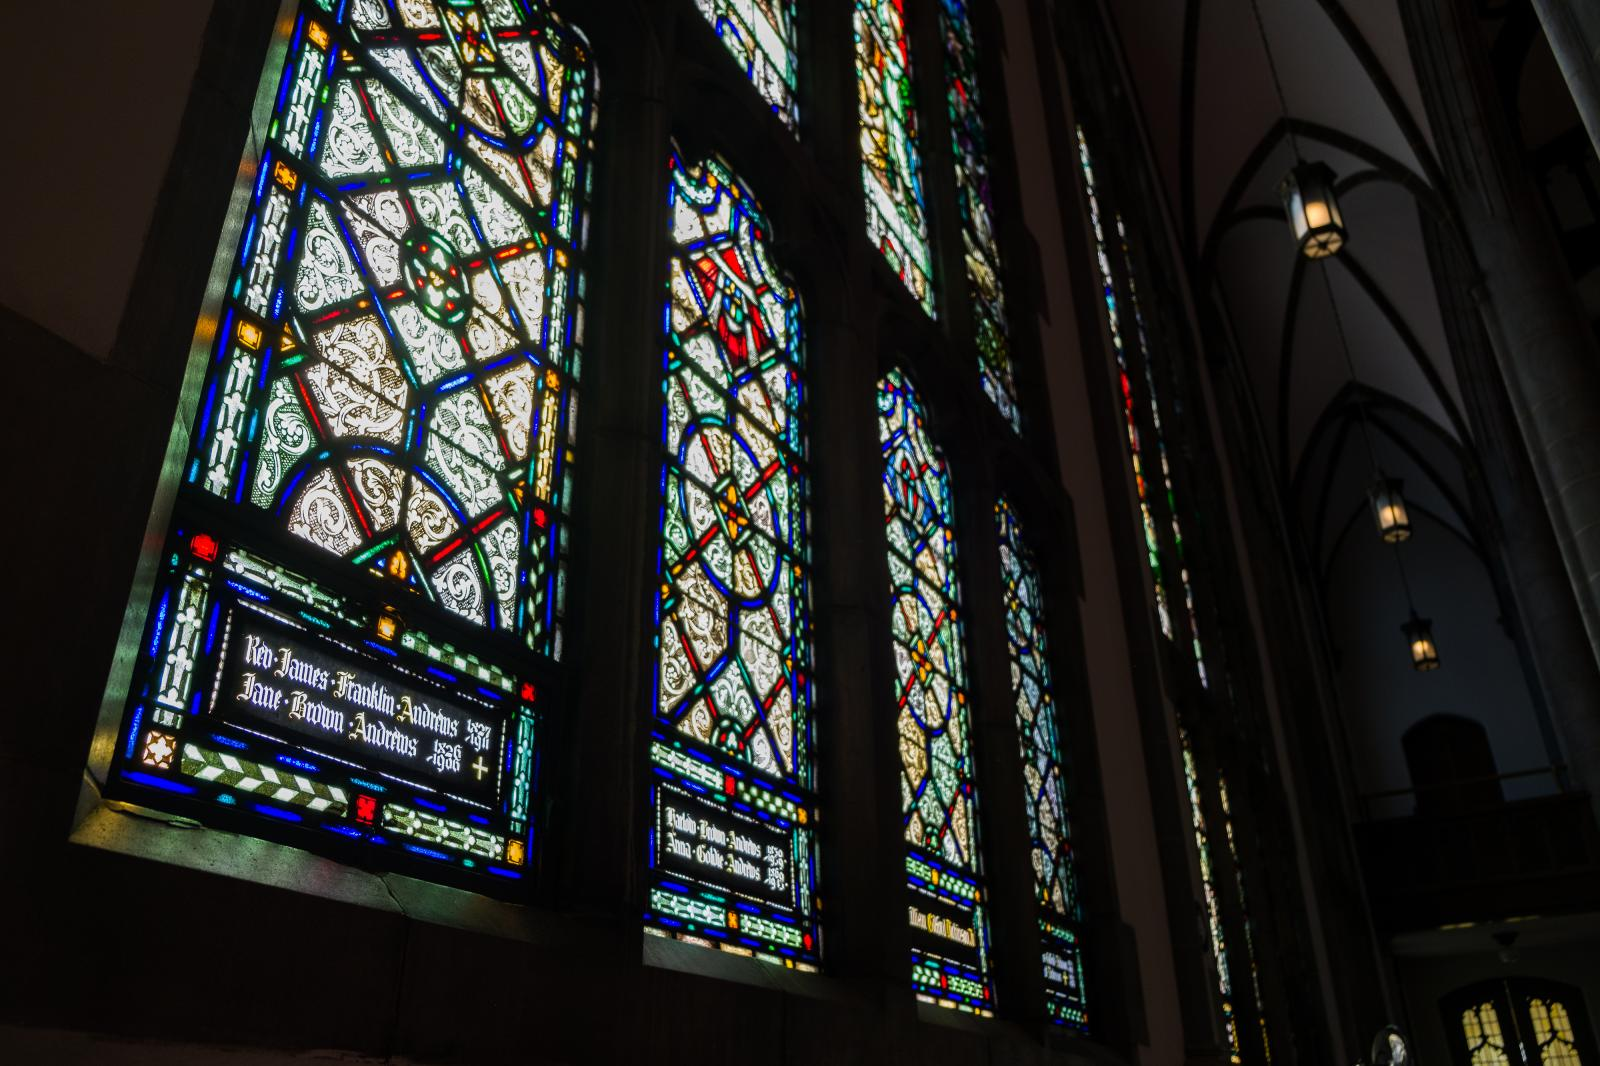 Stained glass windows cover the largest walls of the sanctuary.